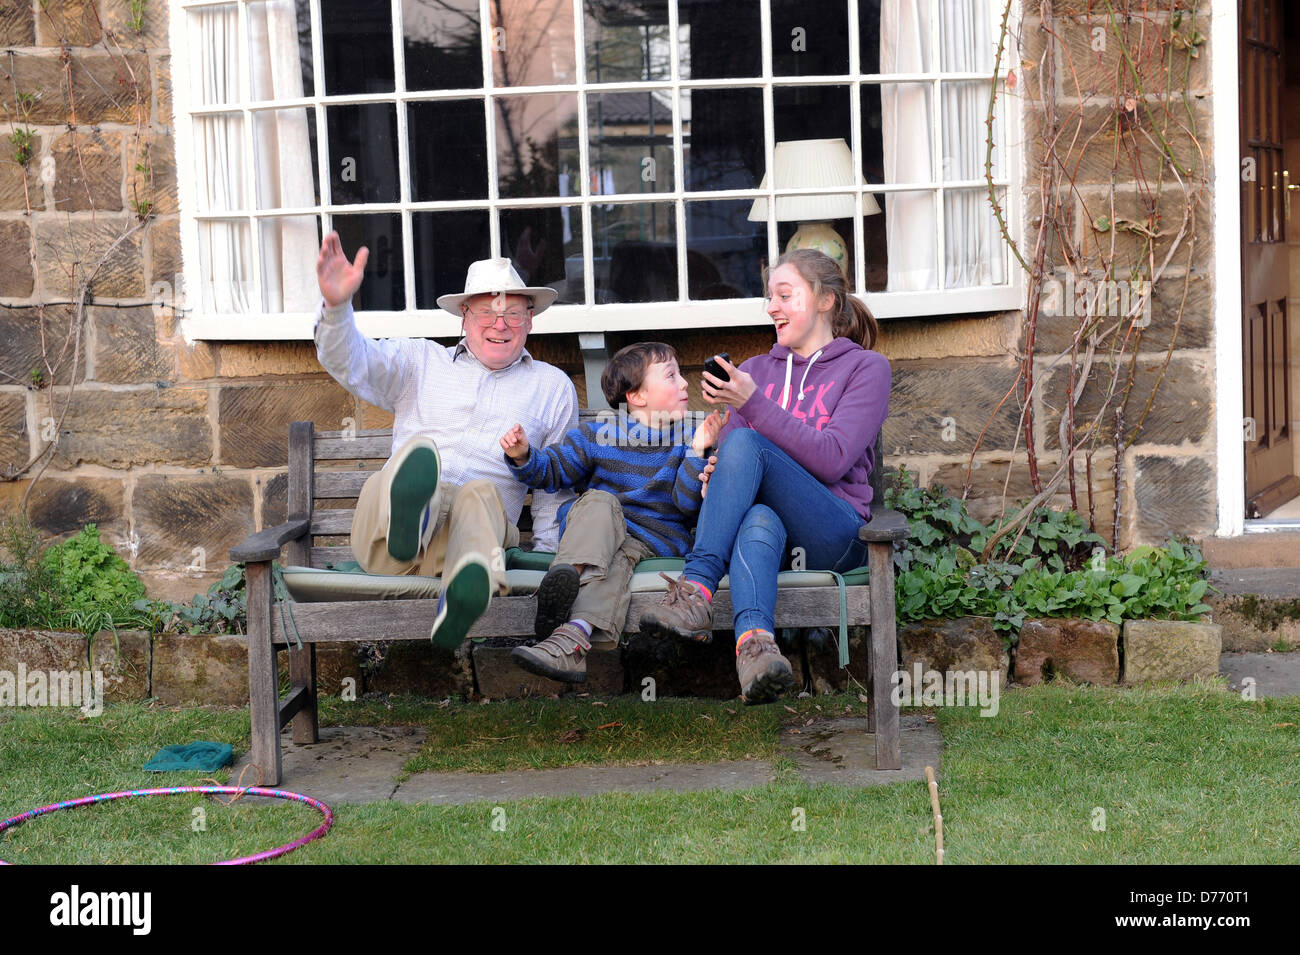 grandfather and grandchildren celebrating the grandfather's speedy time in a garden obstacle competition - Stock Image